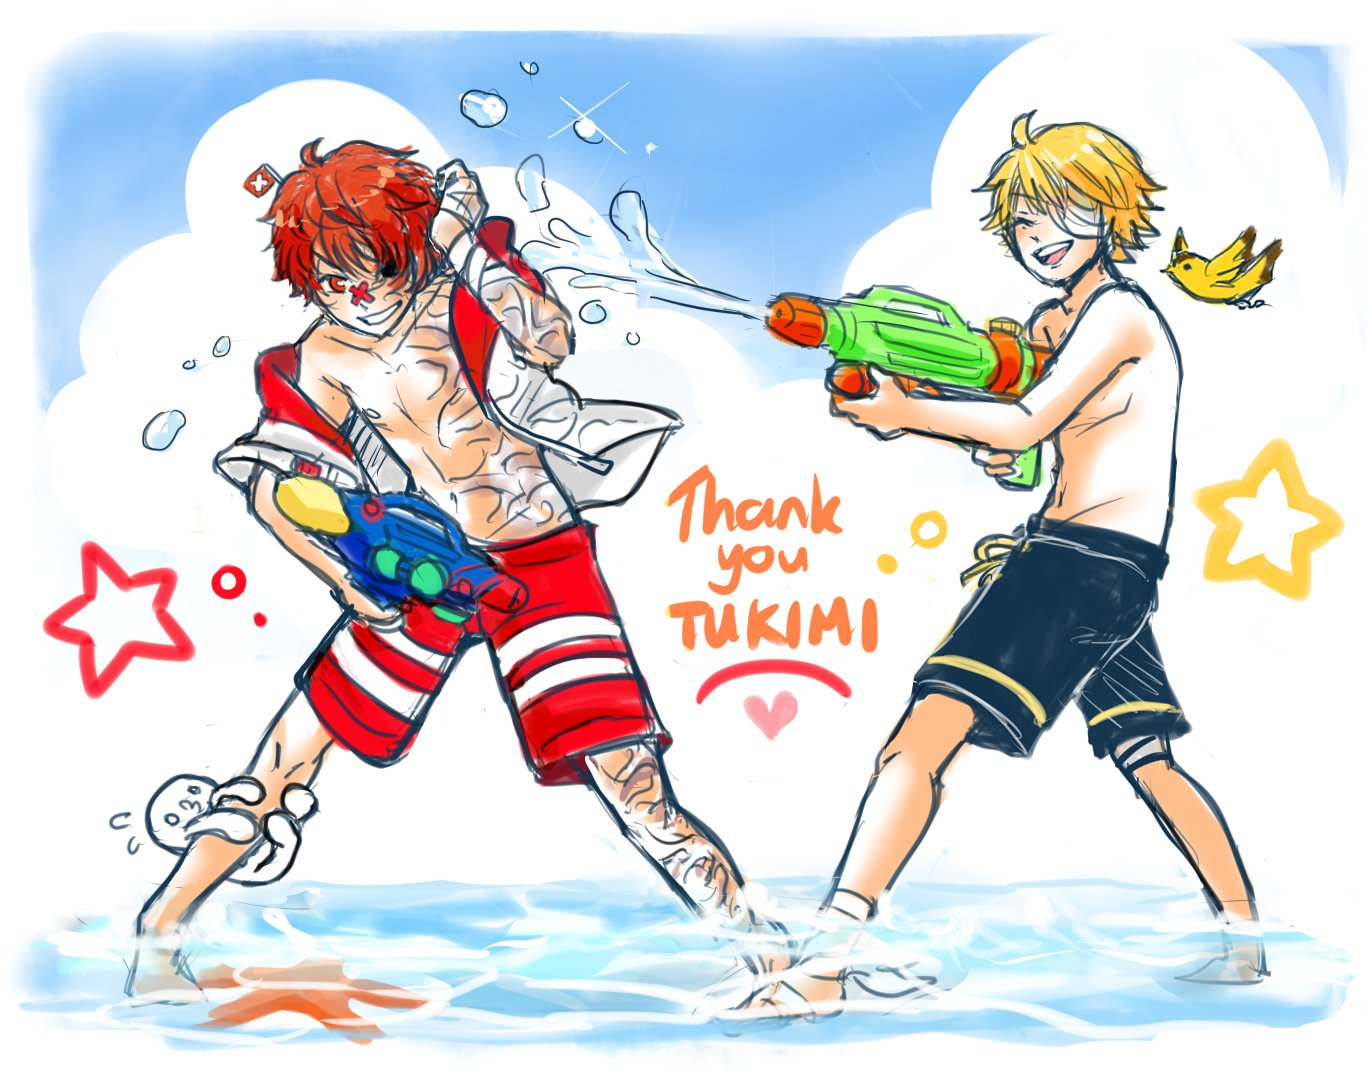 2boys bird blonde_hair fukase head_flag hood hoodie james_(vocaloid) male_swimwear multiple_boys nipples oliver_(vocaloid) point_(vocaloid) red_eyes redhead ryllen scar shallow_water short_sleeves smile standing starfish swim_trunks swimsuit swimwear vocaloid wading water_gun